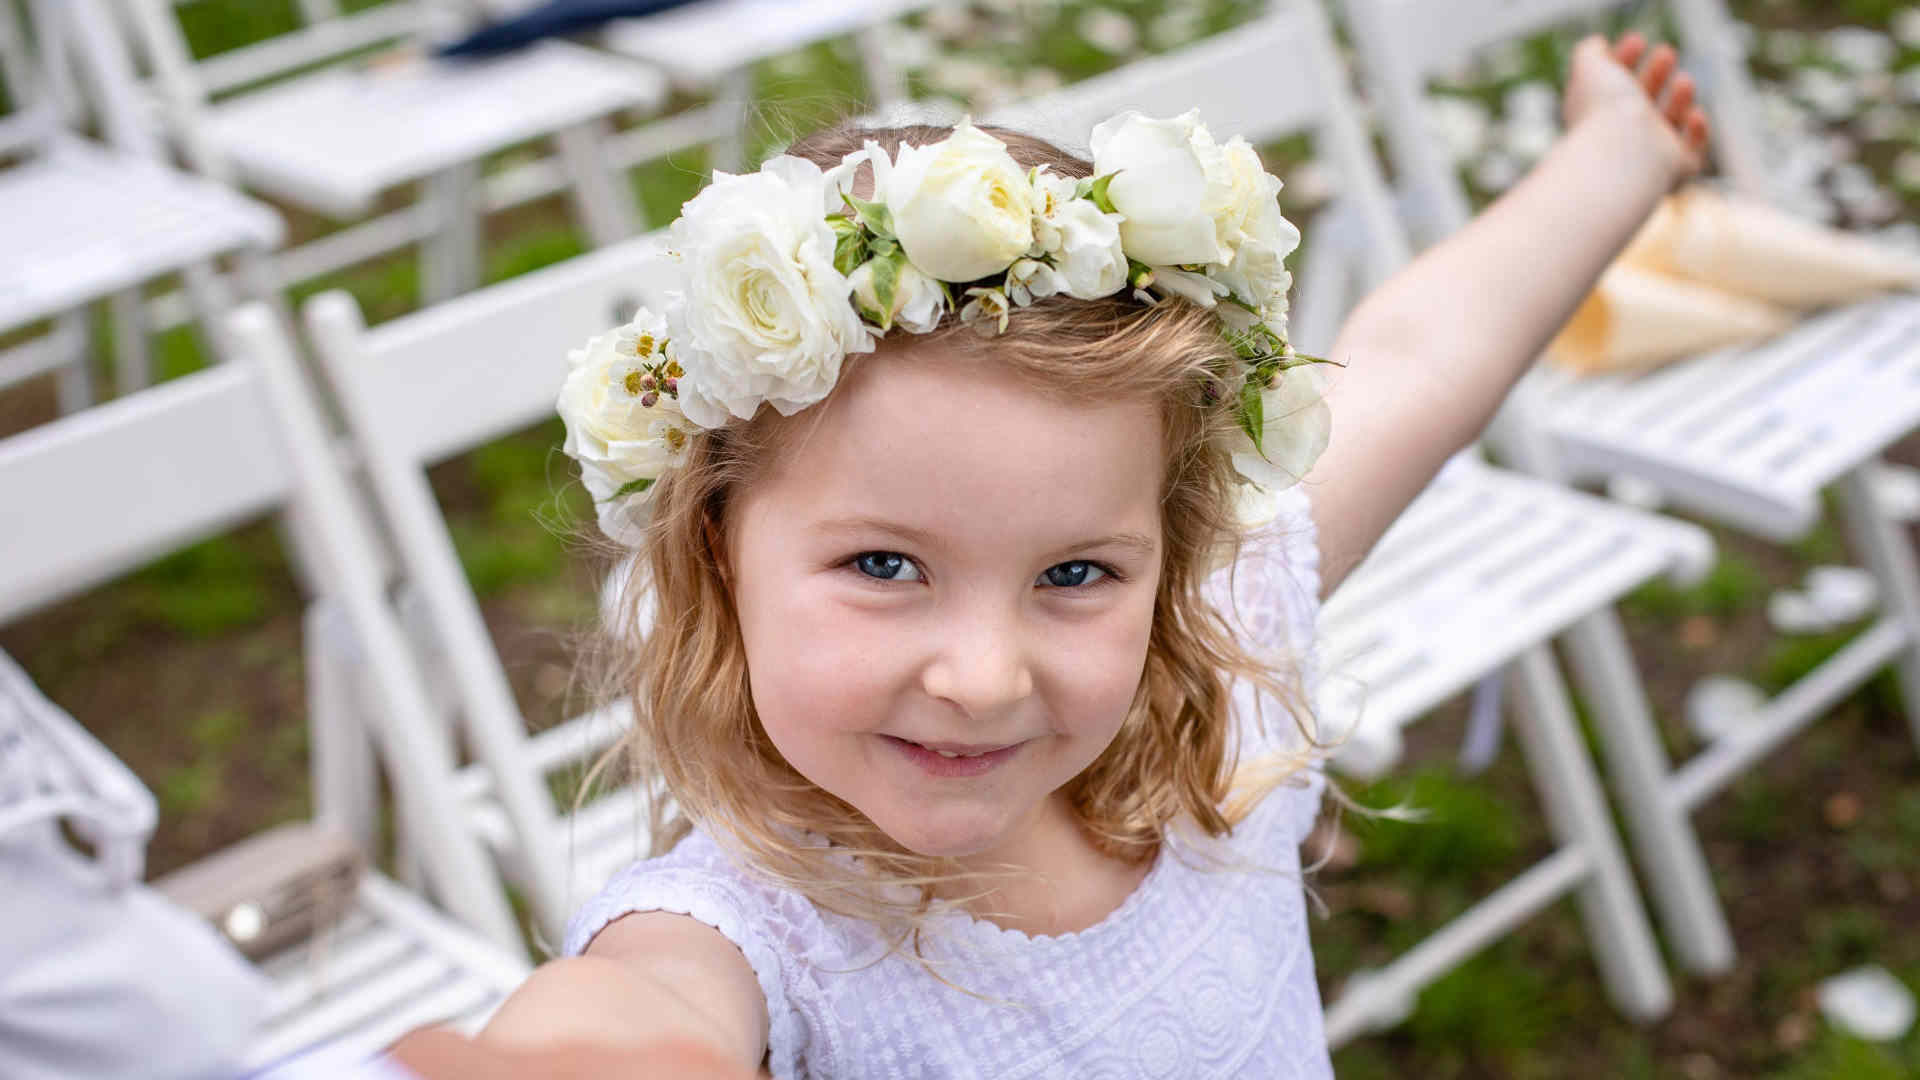 Weddings Without Children - Everything You Need to Know